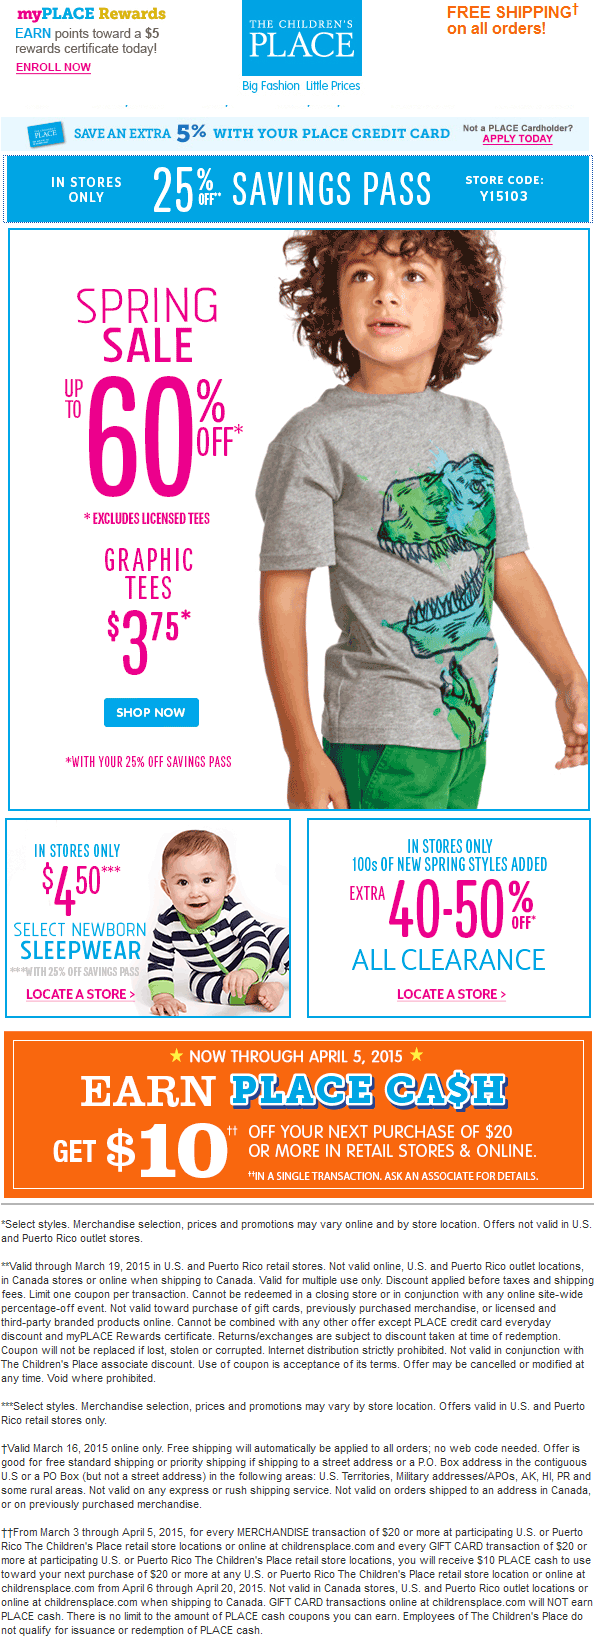 Childrens Place Coupon April 2017 25% off at The Childrens Place